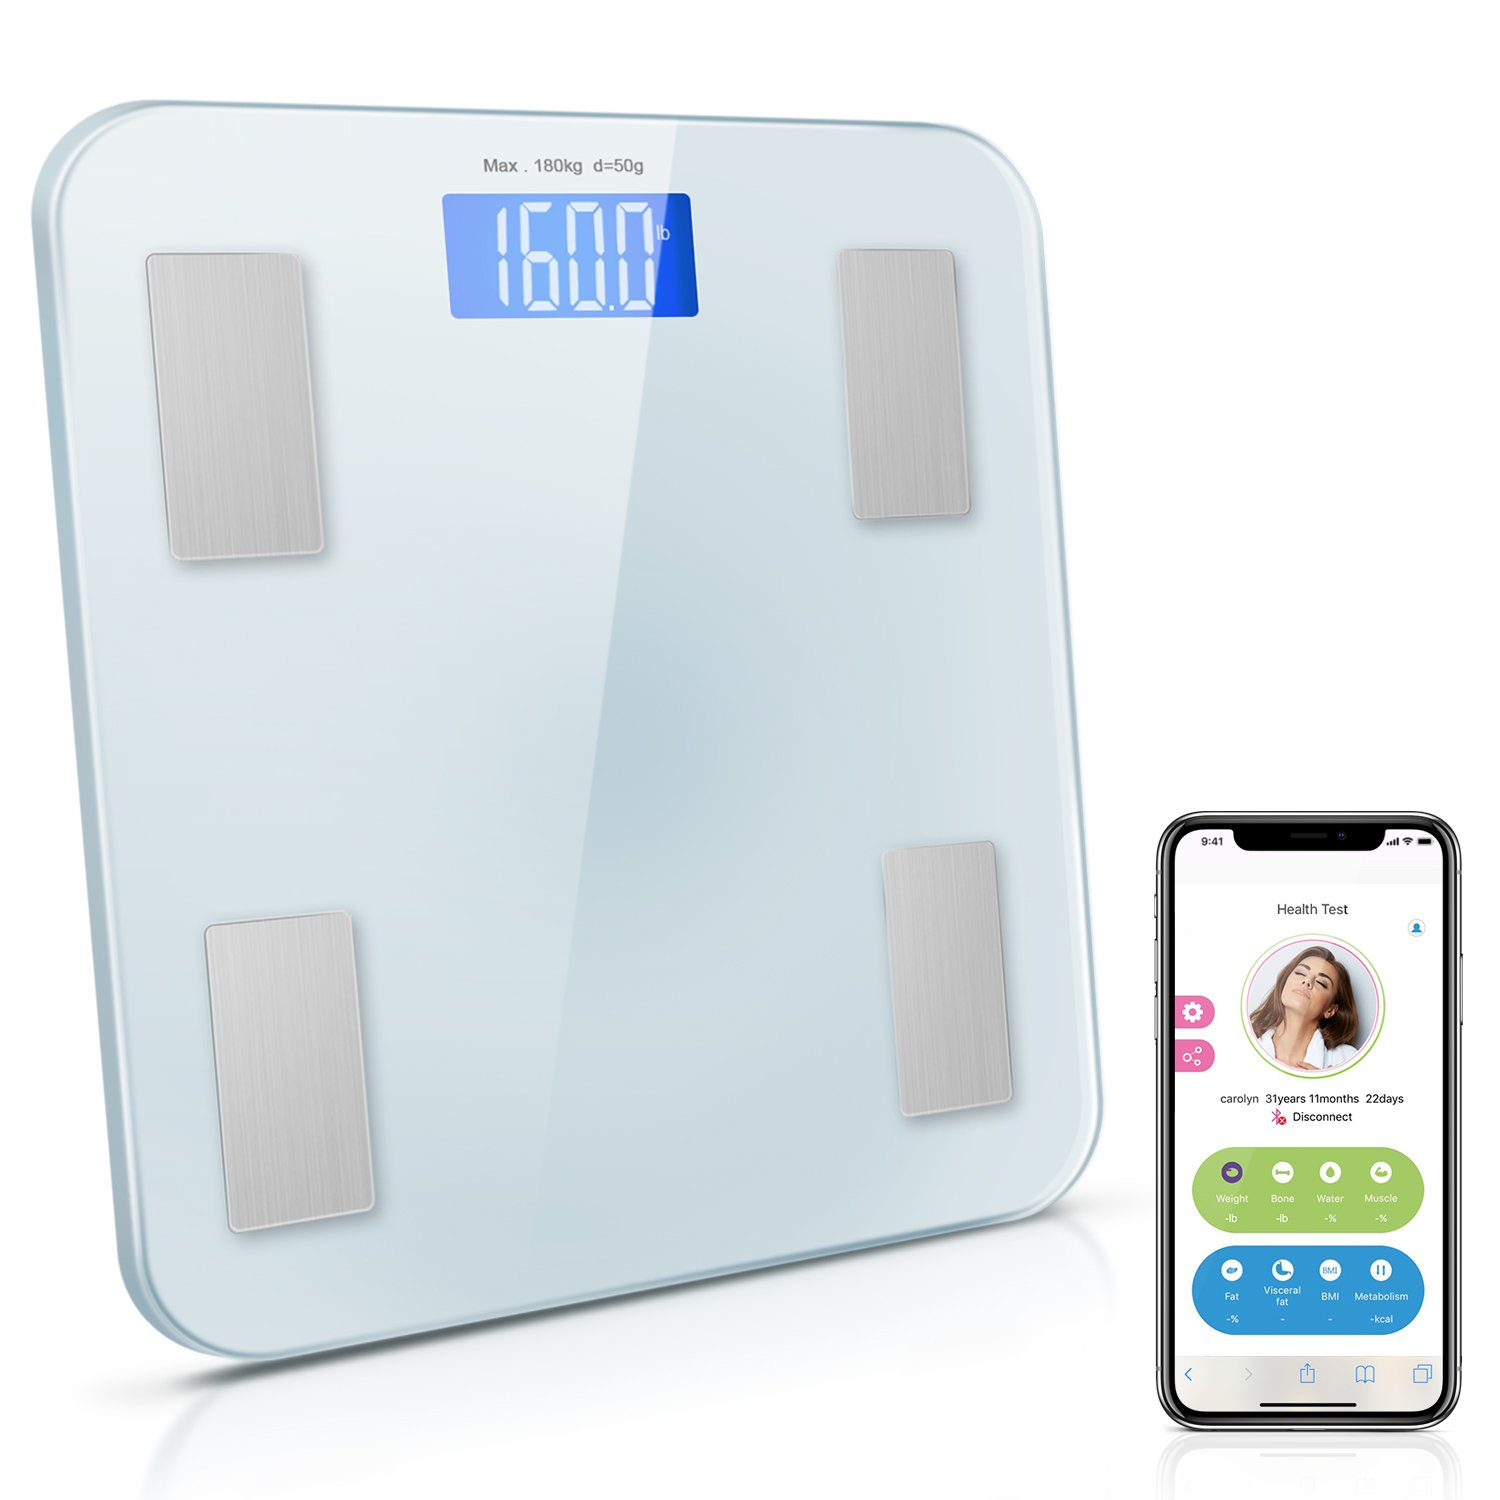 Adoric Smart Scale Bathroom Scale with Free APP for Android and IOS, Body Composition Analysis Measuring Weight, Bone, Water, Muscle, Fat, BMI, BMR